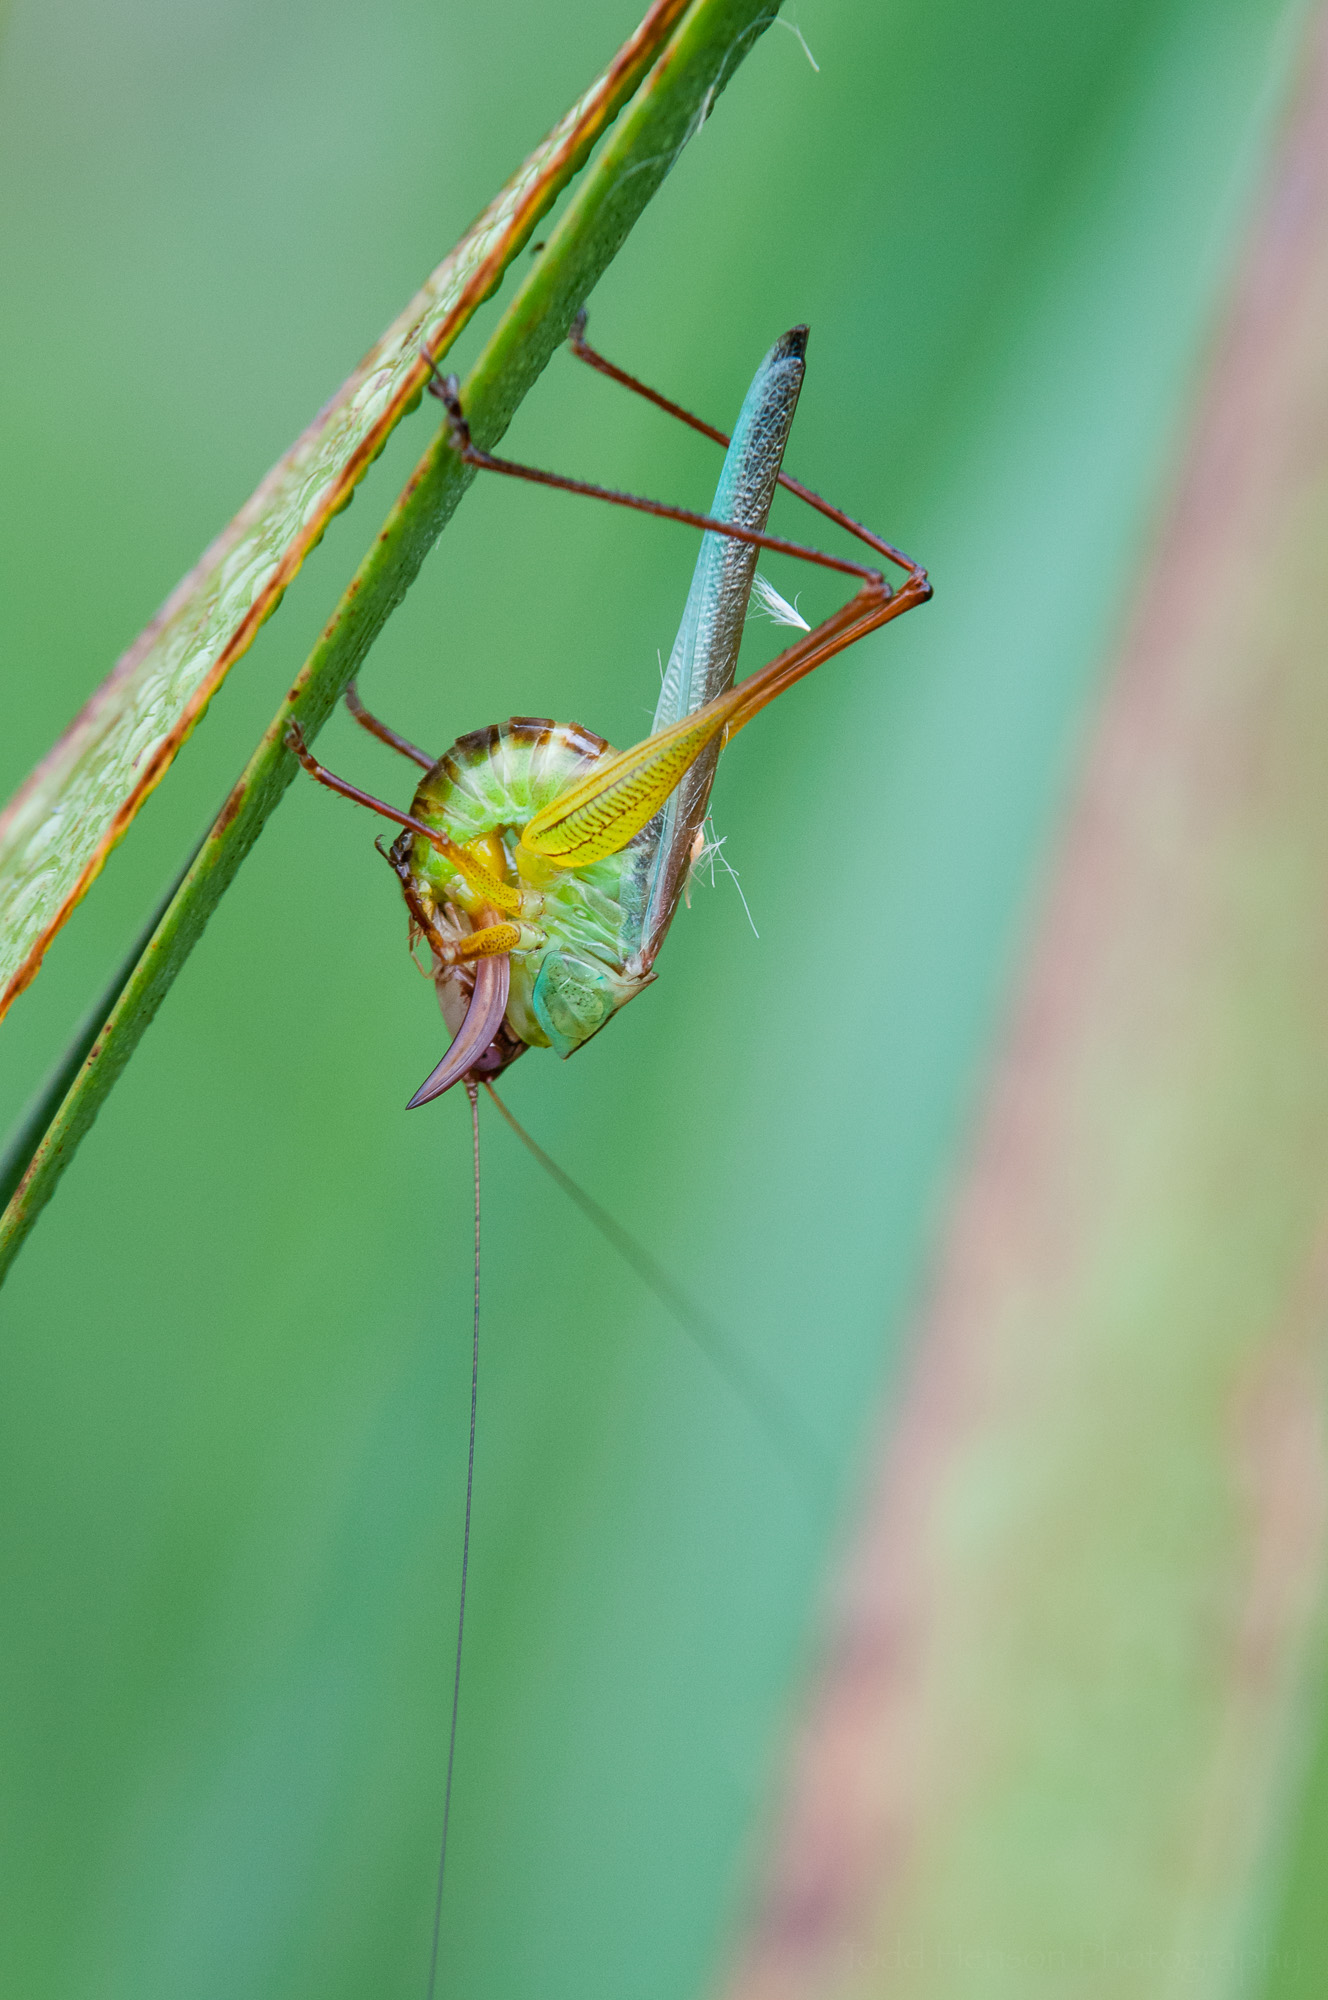 Second of a sequence of a katydid cleaning itself.